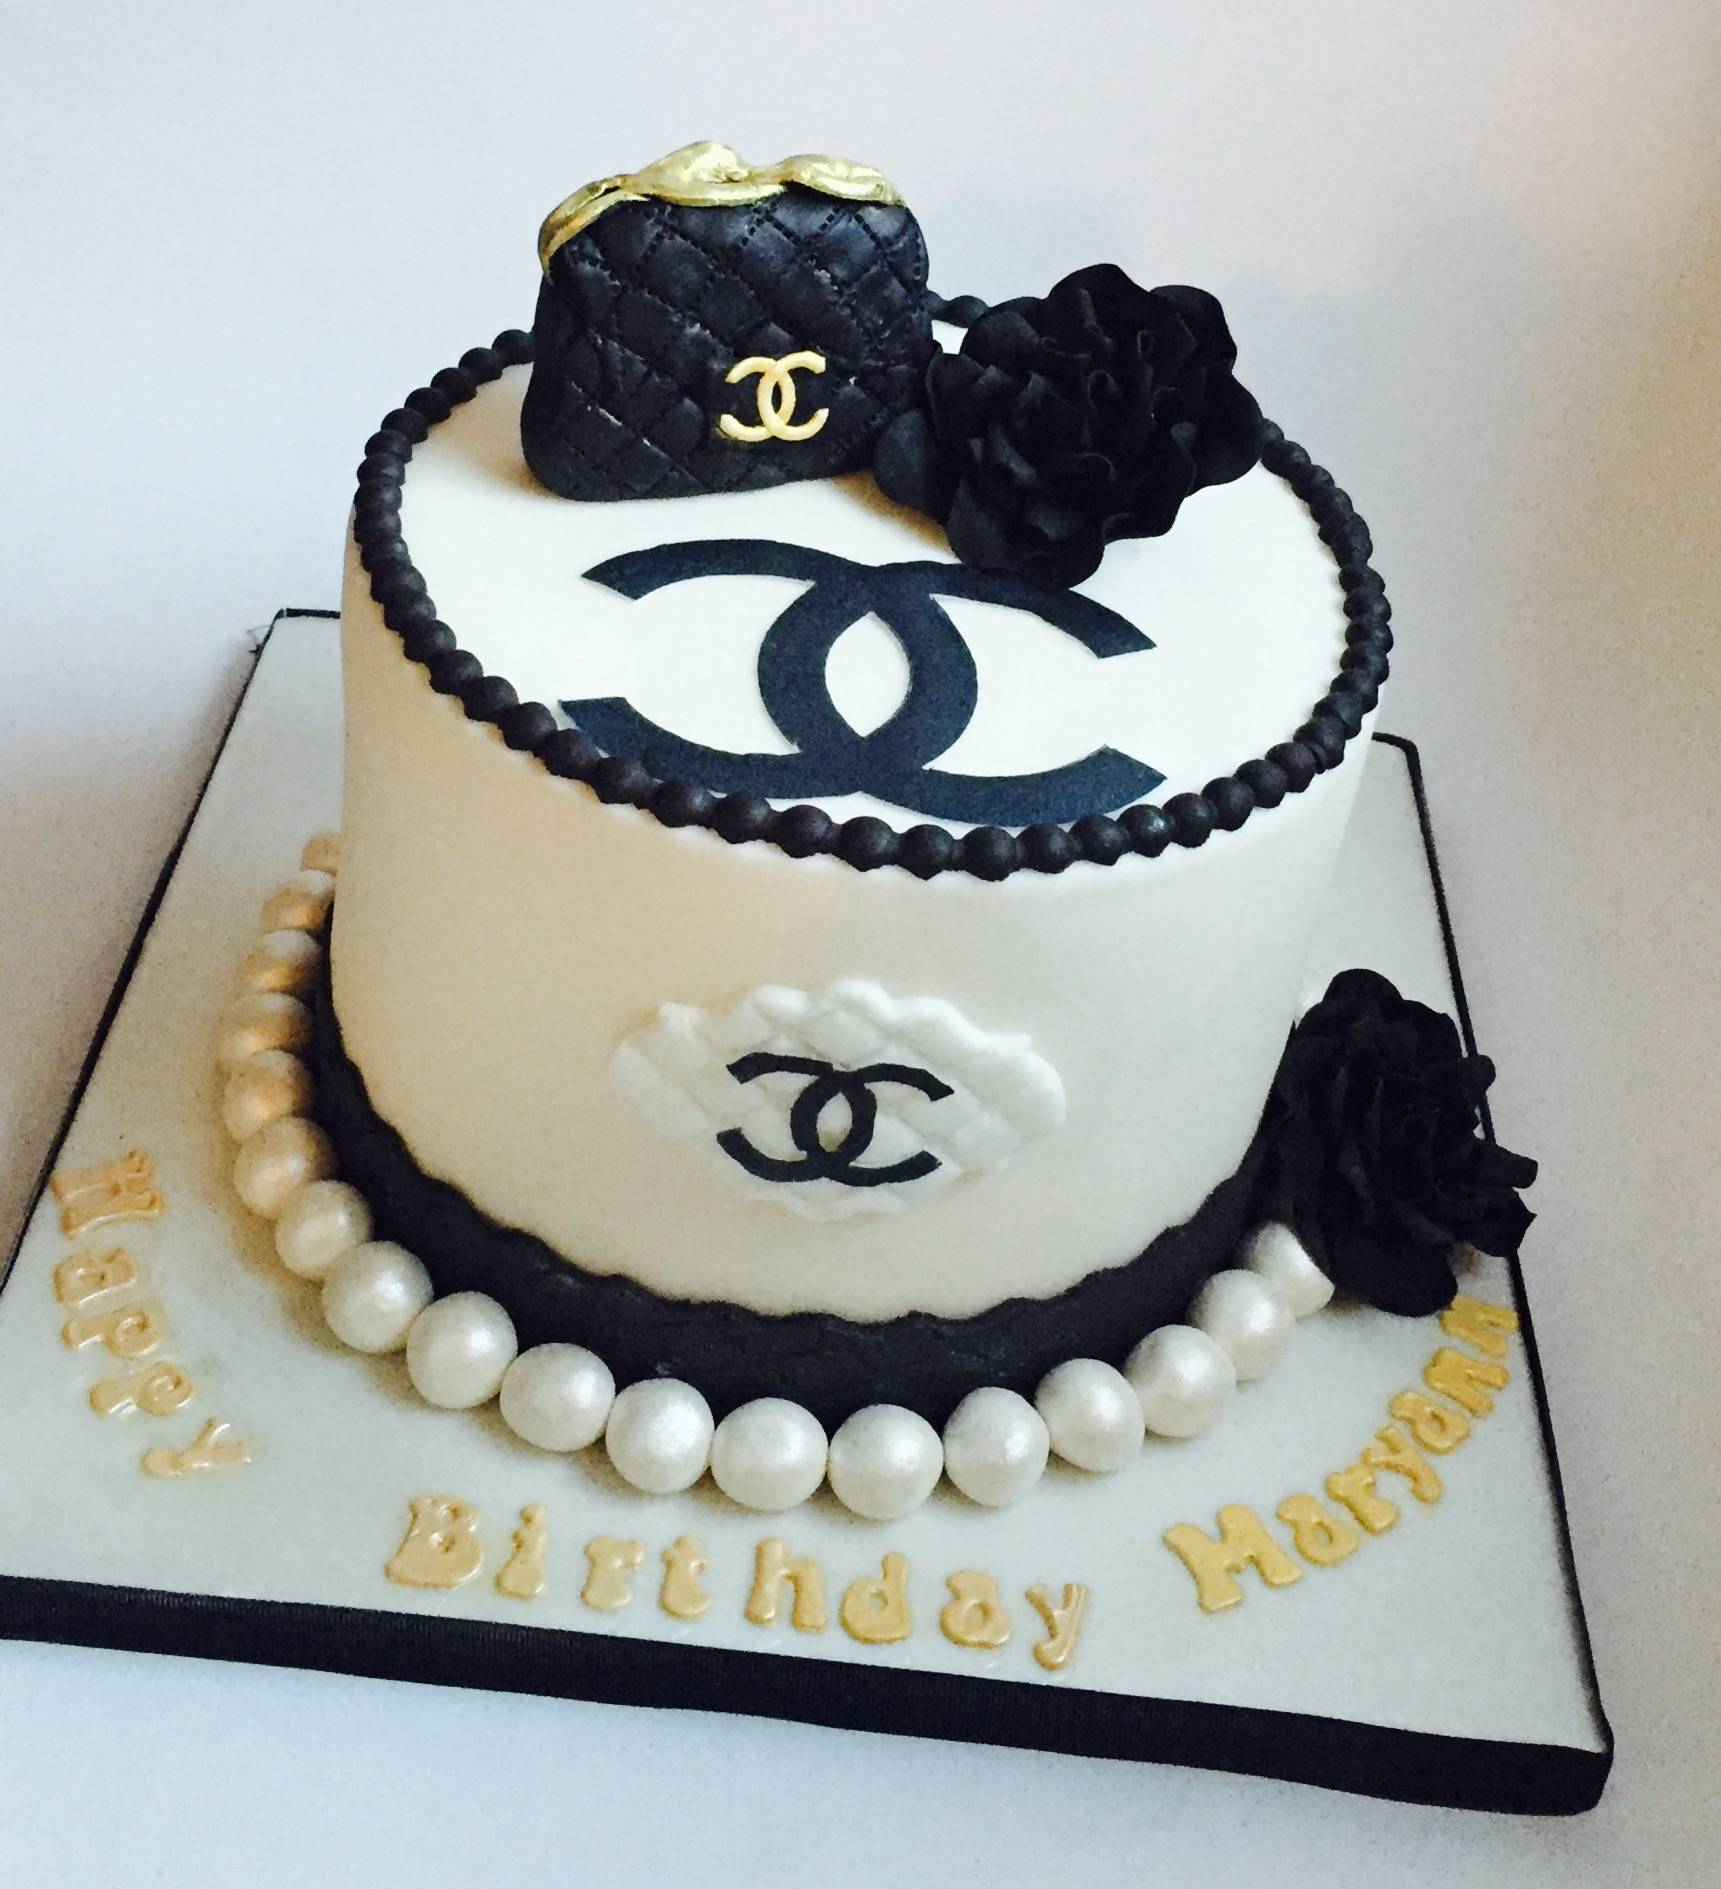 Chanel Birthday Cake Chanel Birthday Cakes - entitlementtrap.com